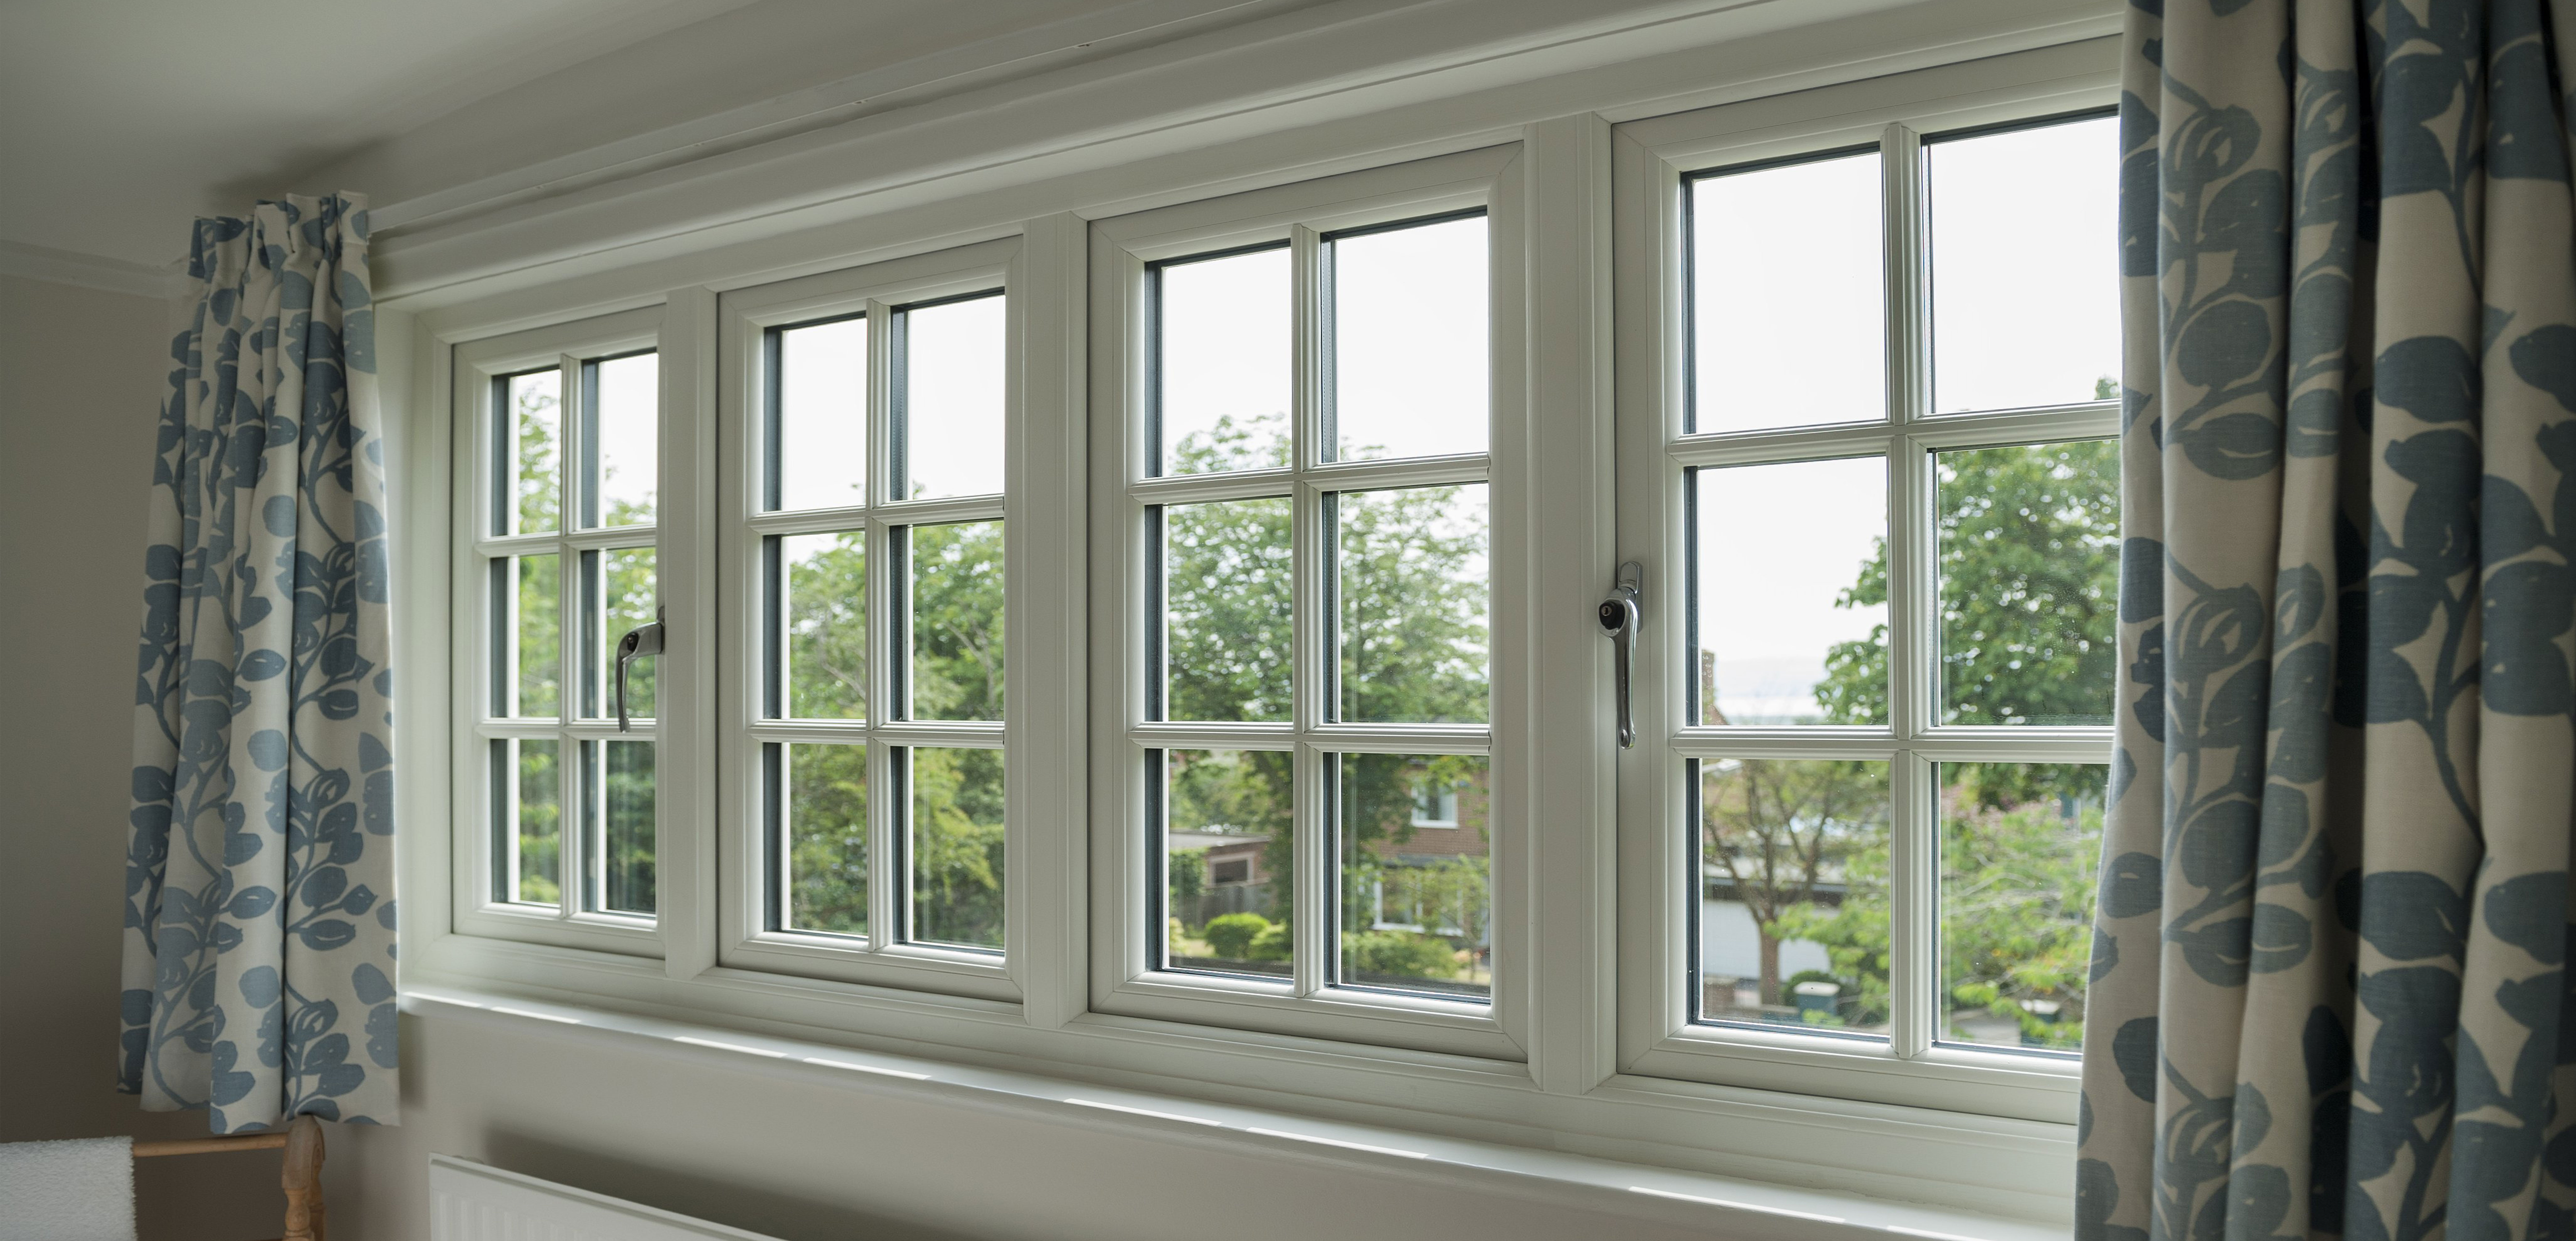 Upvc windows derby kedleston free online quote for Where to buy house windows